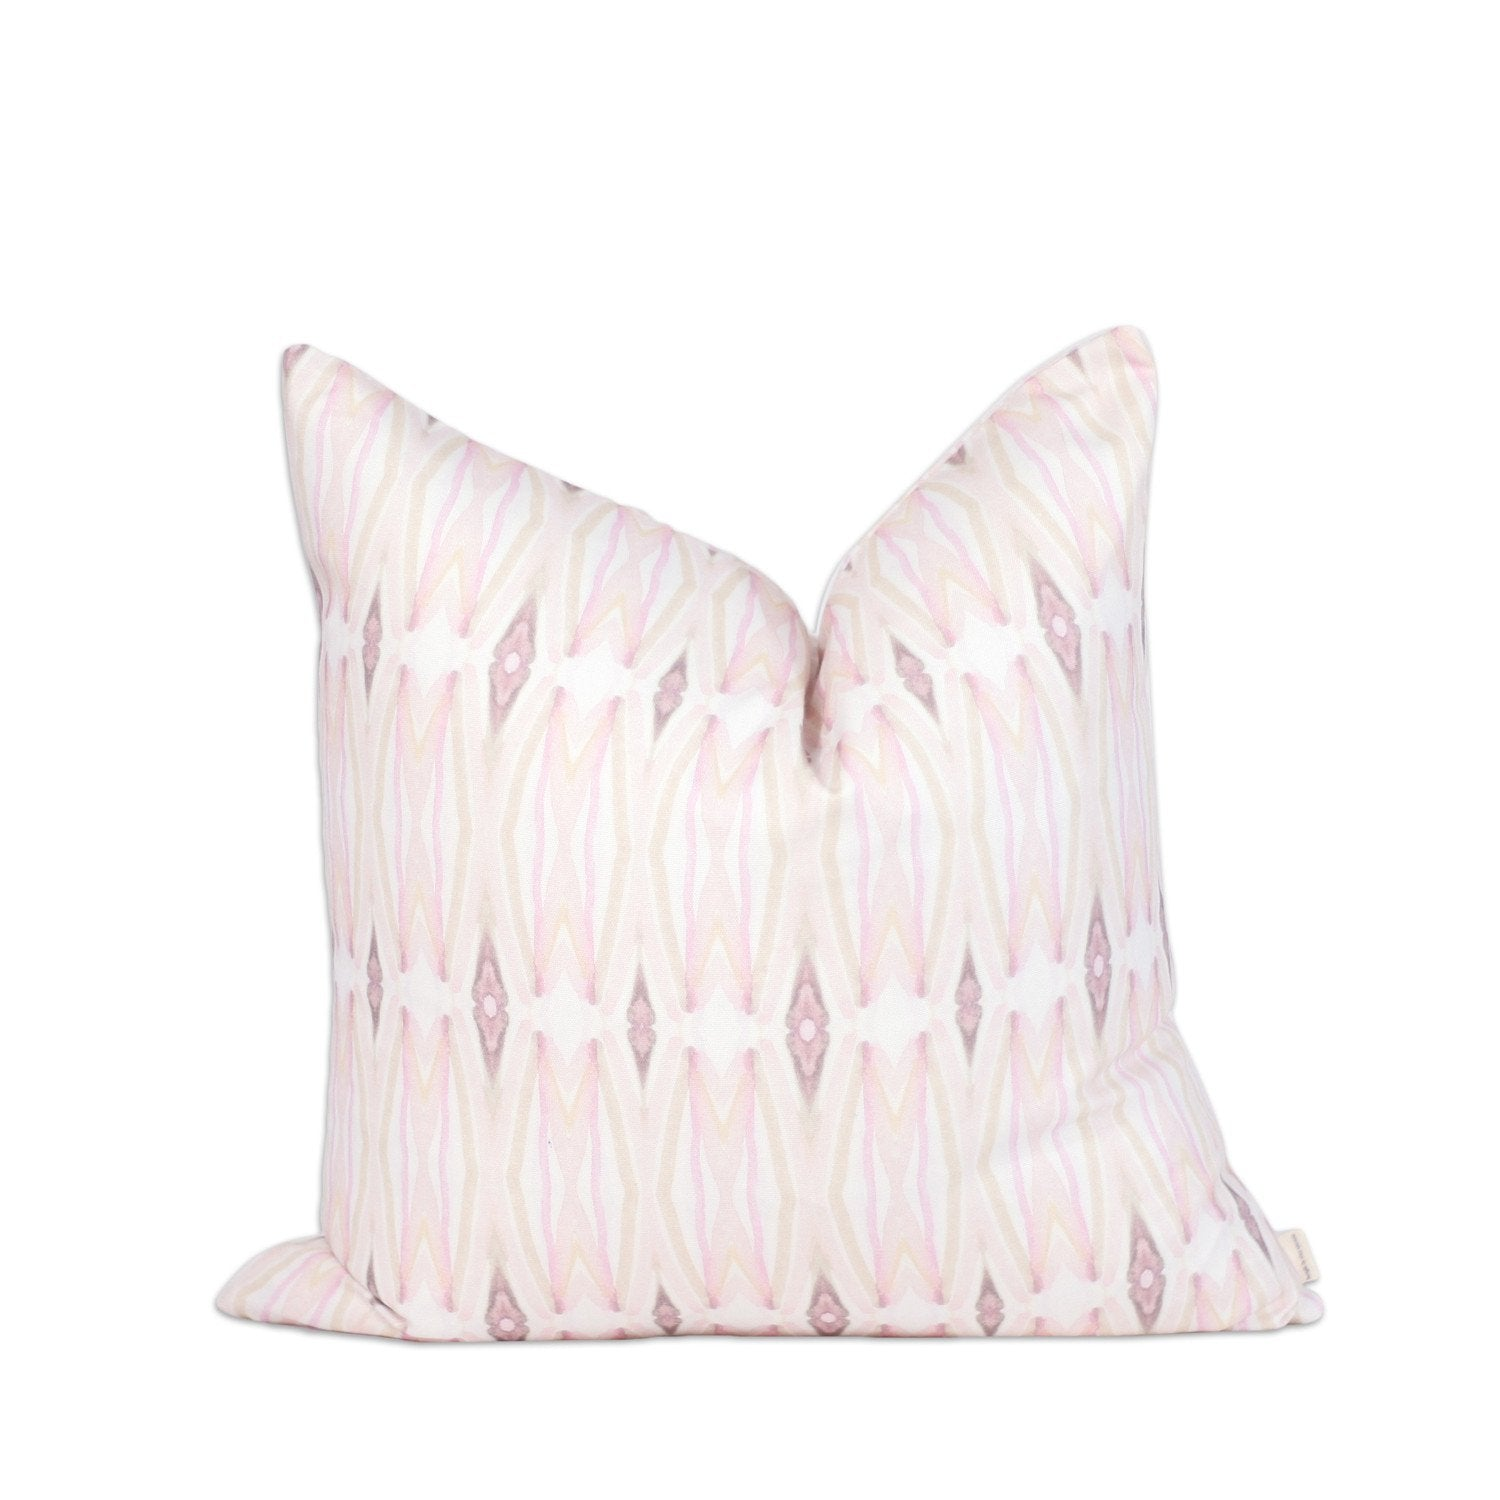 Nakuru Pillow